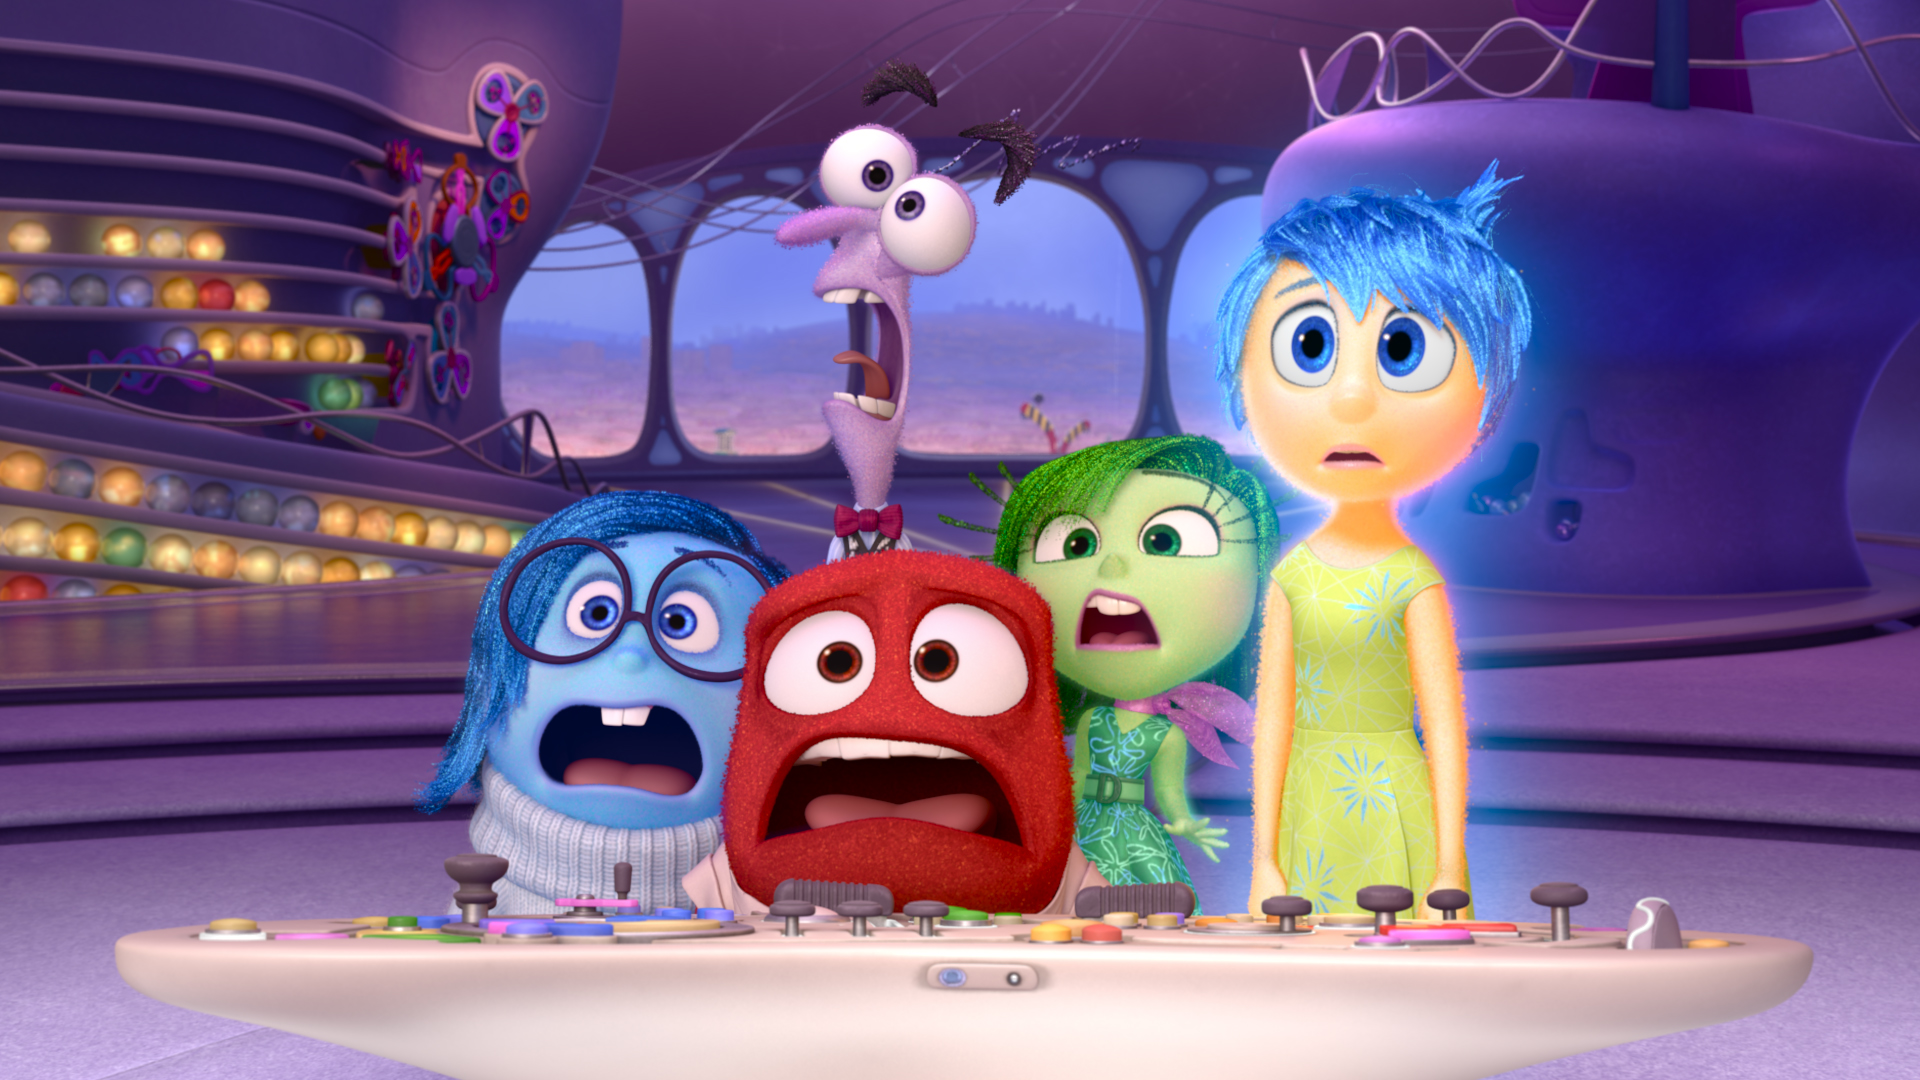 Pictured (L-R): Sadness, Fear, Anger, Disgust, Joy. 2015 Disney Pixar. All Rights Reserved.